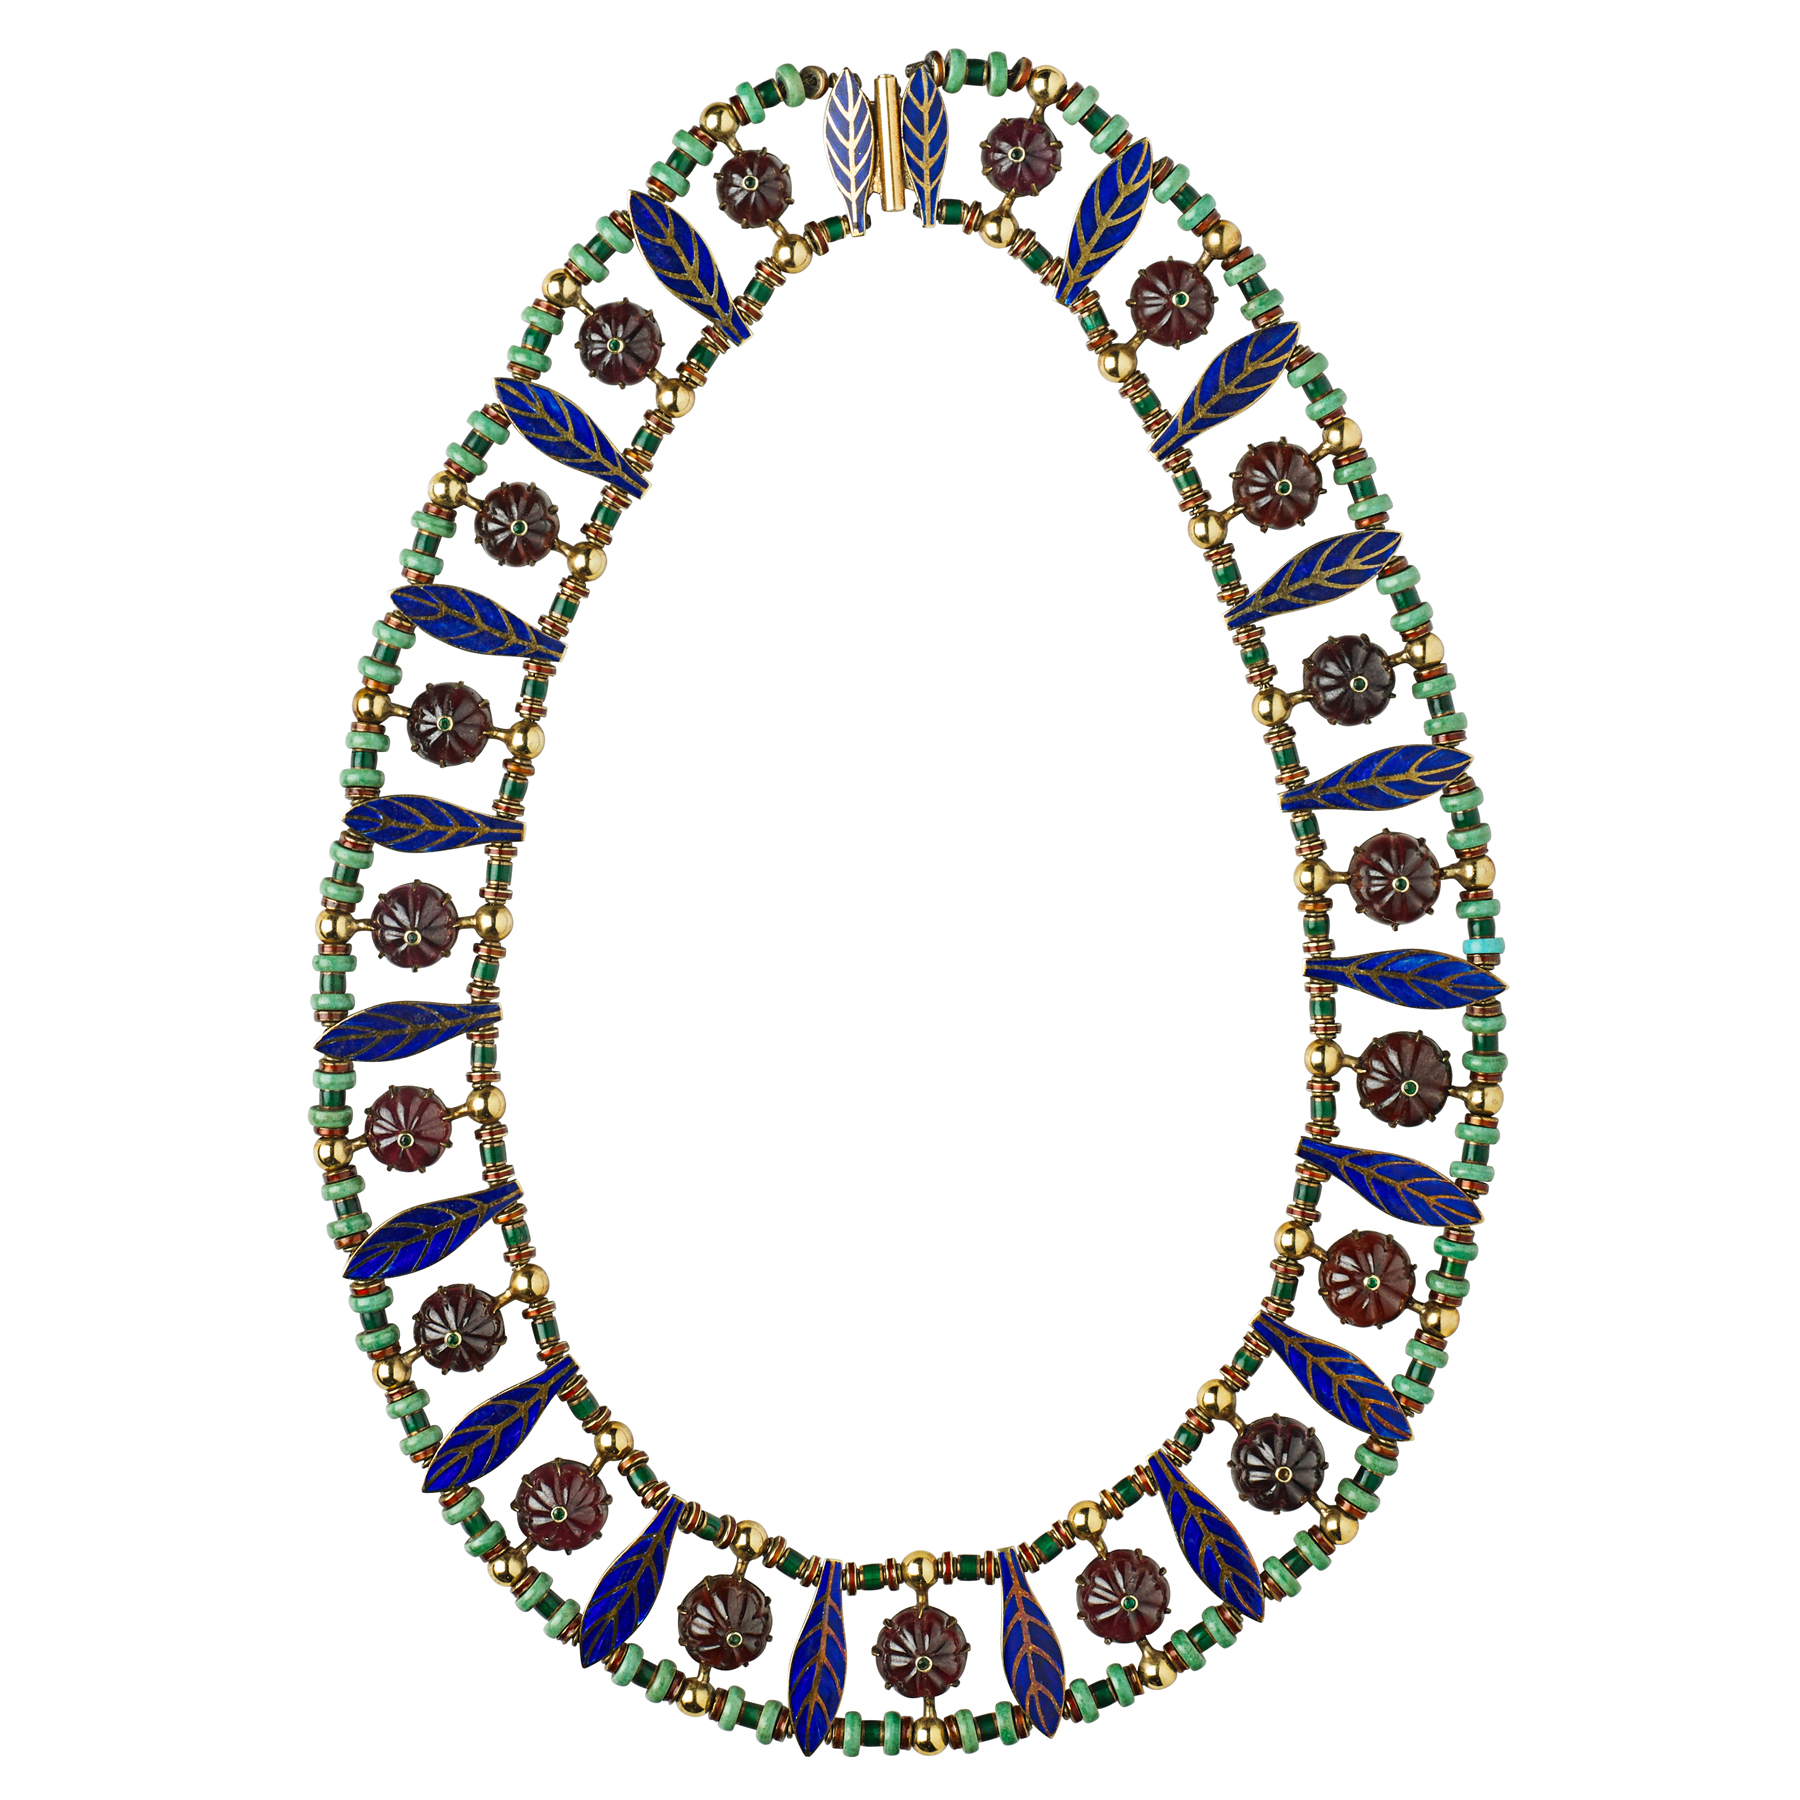 An enameled yellow gold and gem-set collar necklace with turquoise, carved garnet cabochons, and blue enamel by Marie Zimmermann, circa 1937.